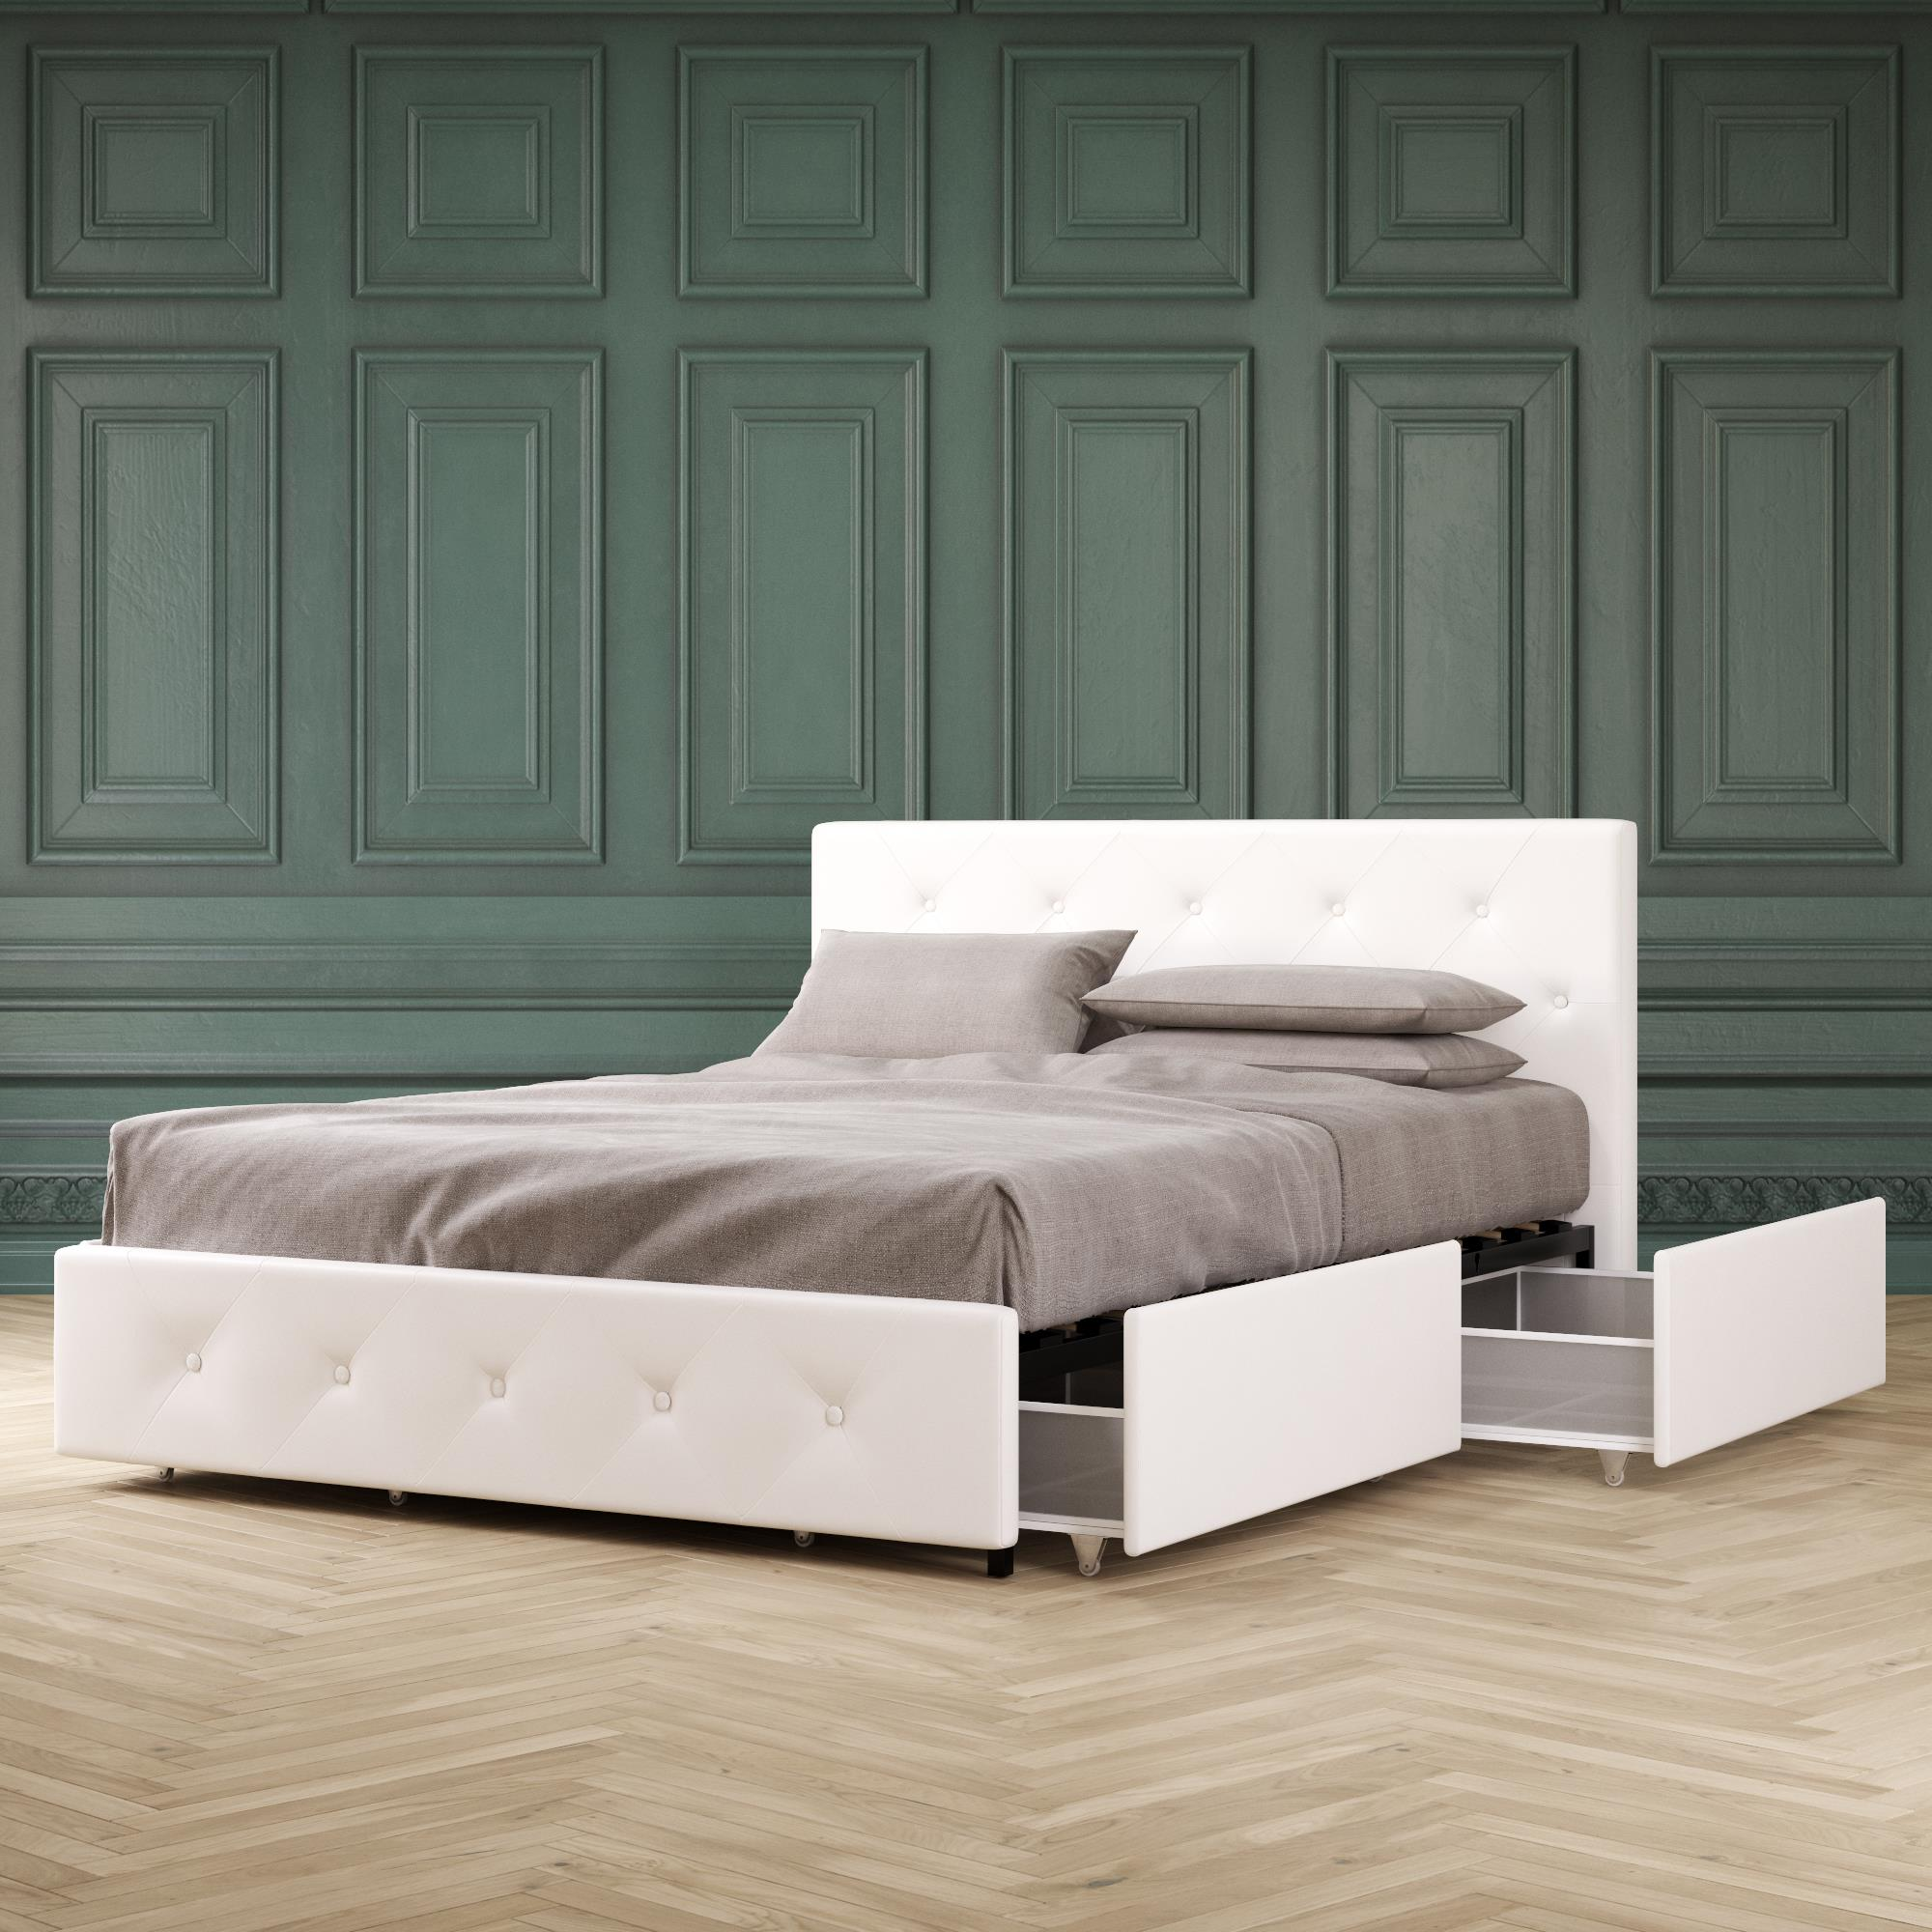 Picture of: Dhp Dean Upholstered Bed With Storage White Faux Leather Queen Walmart Com Walmart Com